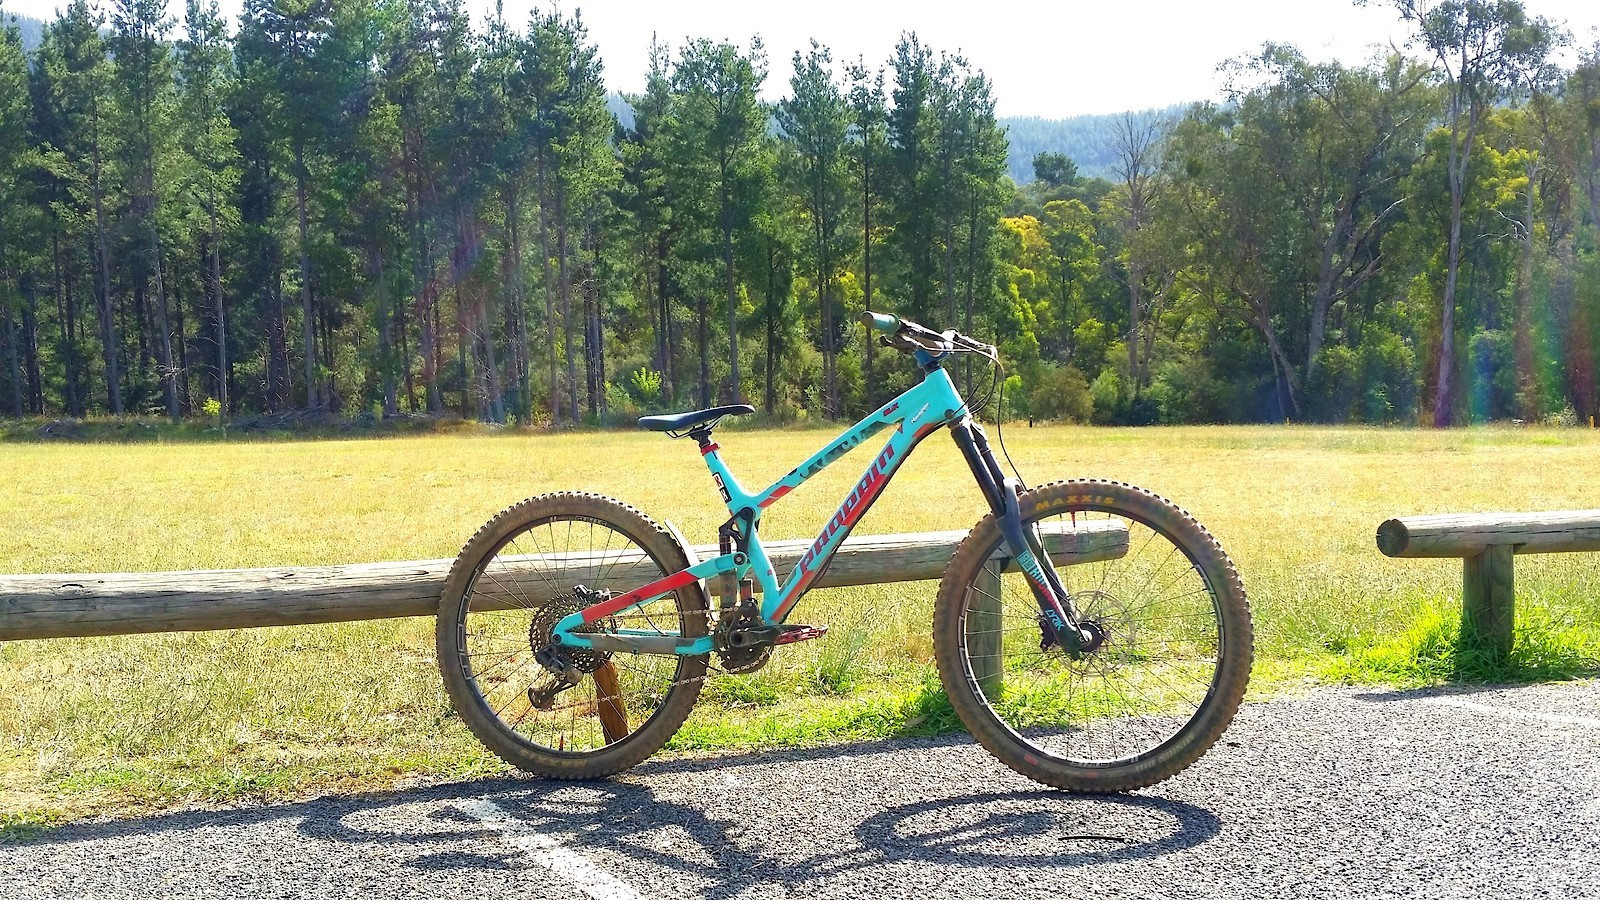 Propain Spindrift blue - 2019 Vital Bike of the Day Collection - Mountain Biking Pictures - Vital MTB